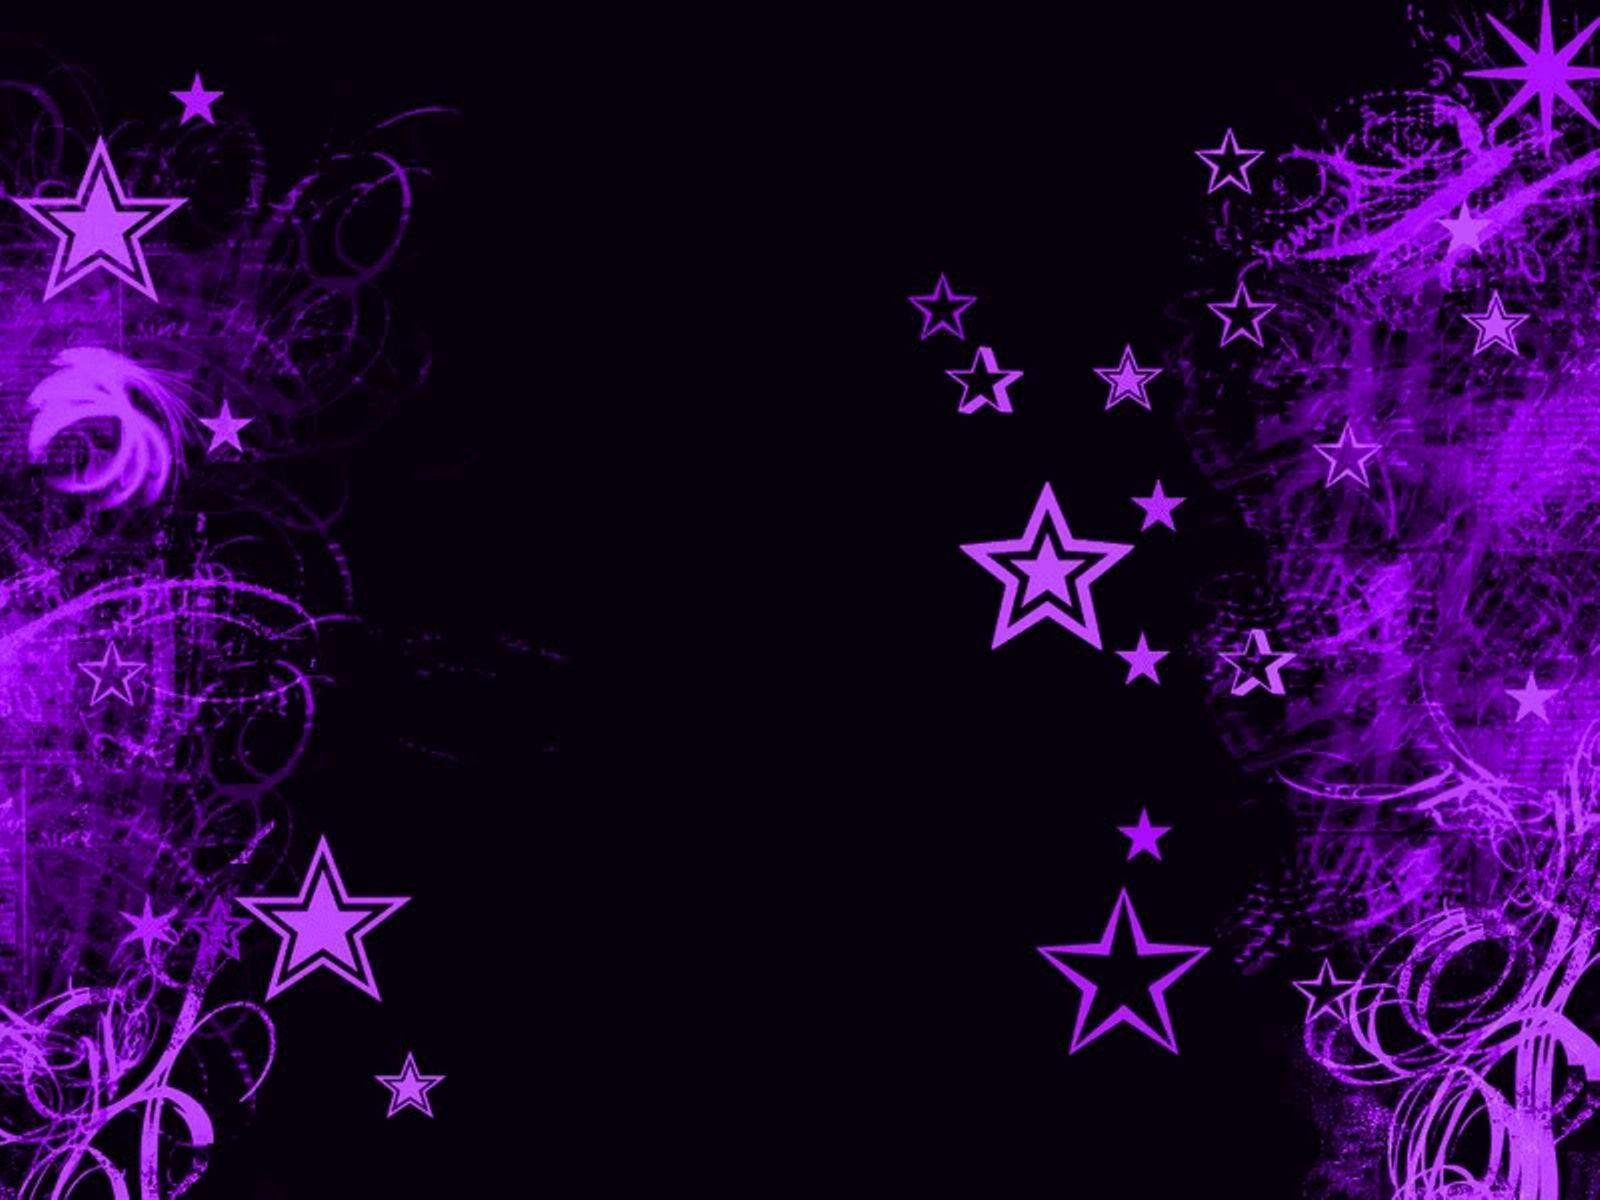 Purple And Black Hearts Wallpaper: Black And Purple Backgrounds